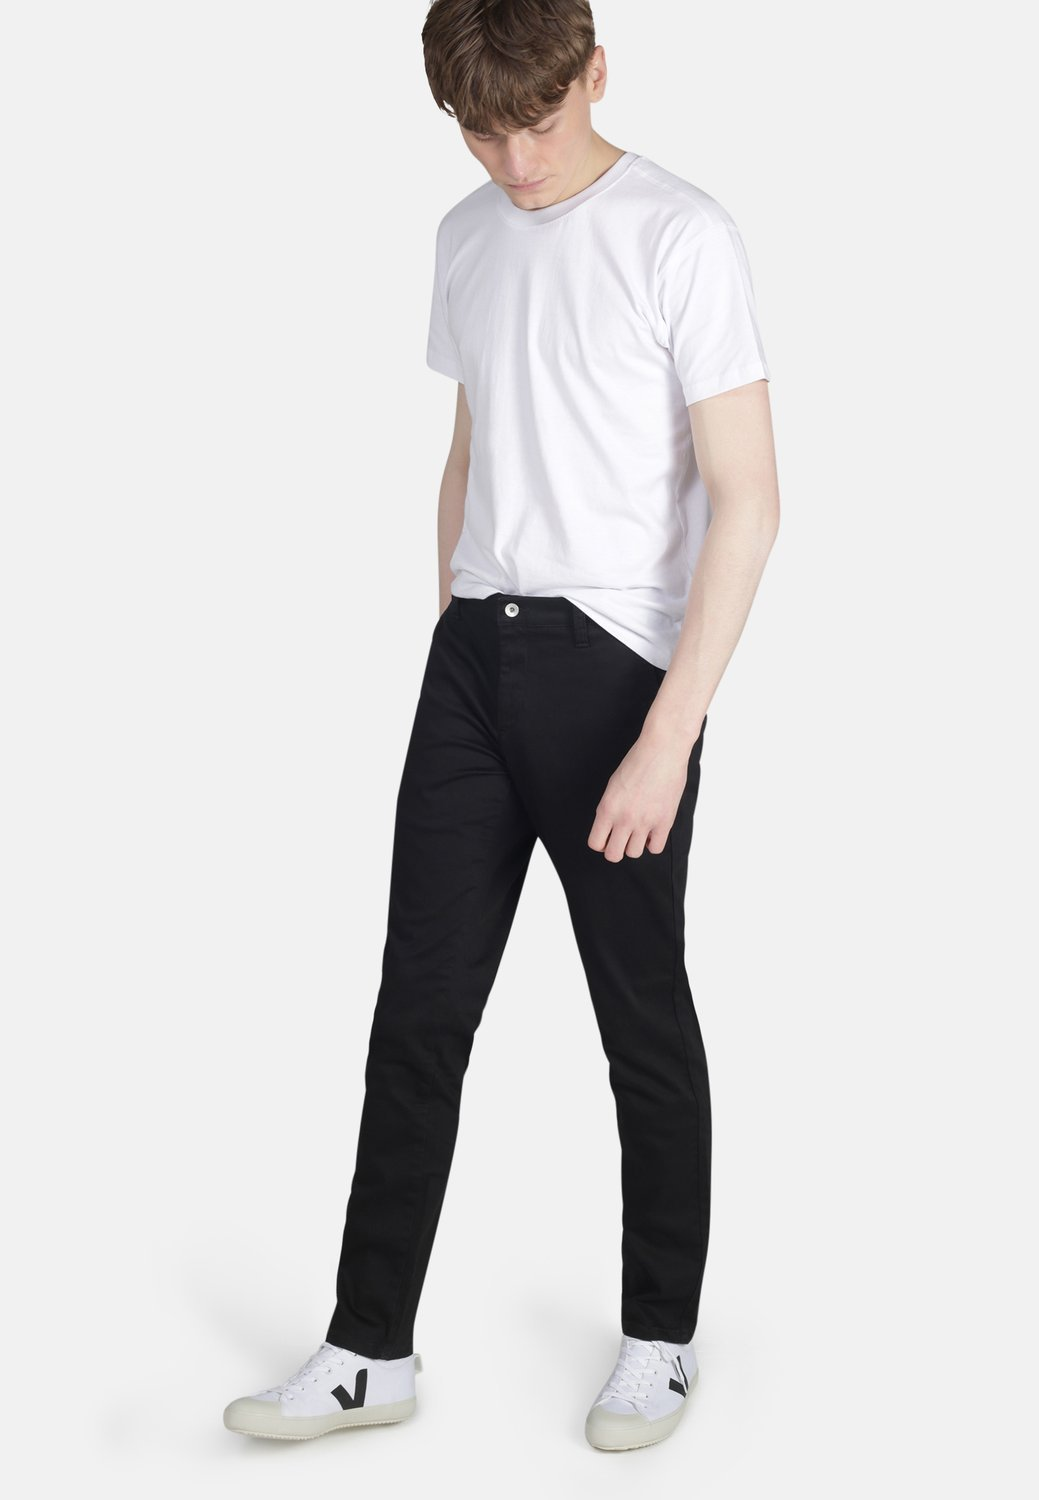 Black Organic Cotton Chino - Komodo Fashion